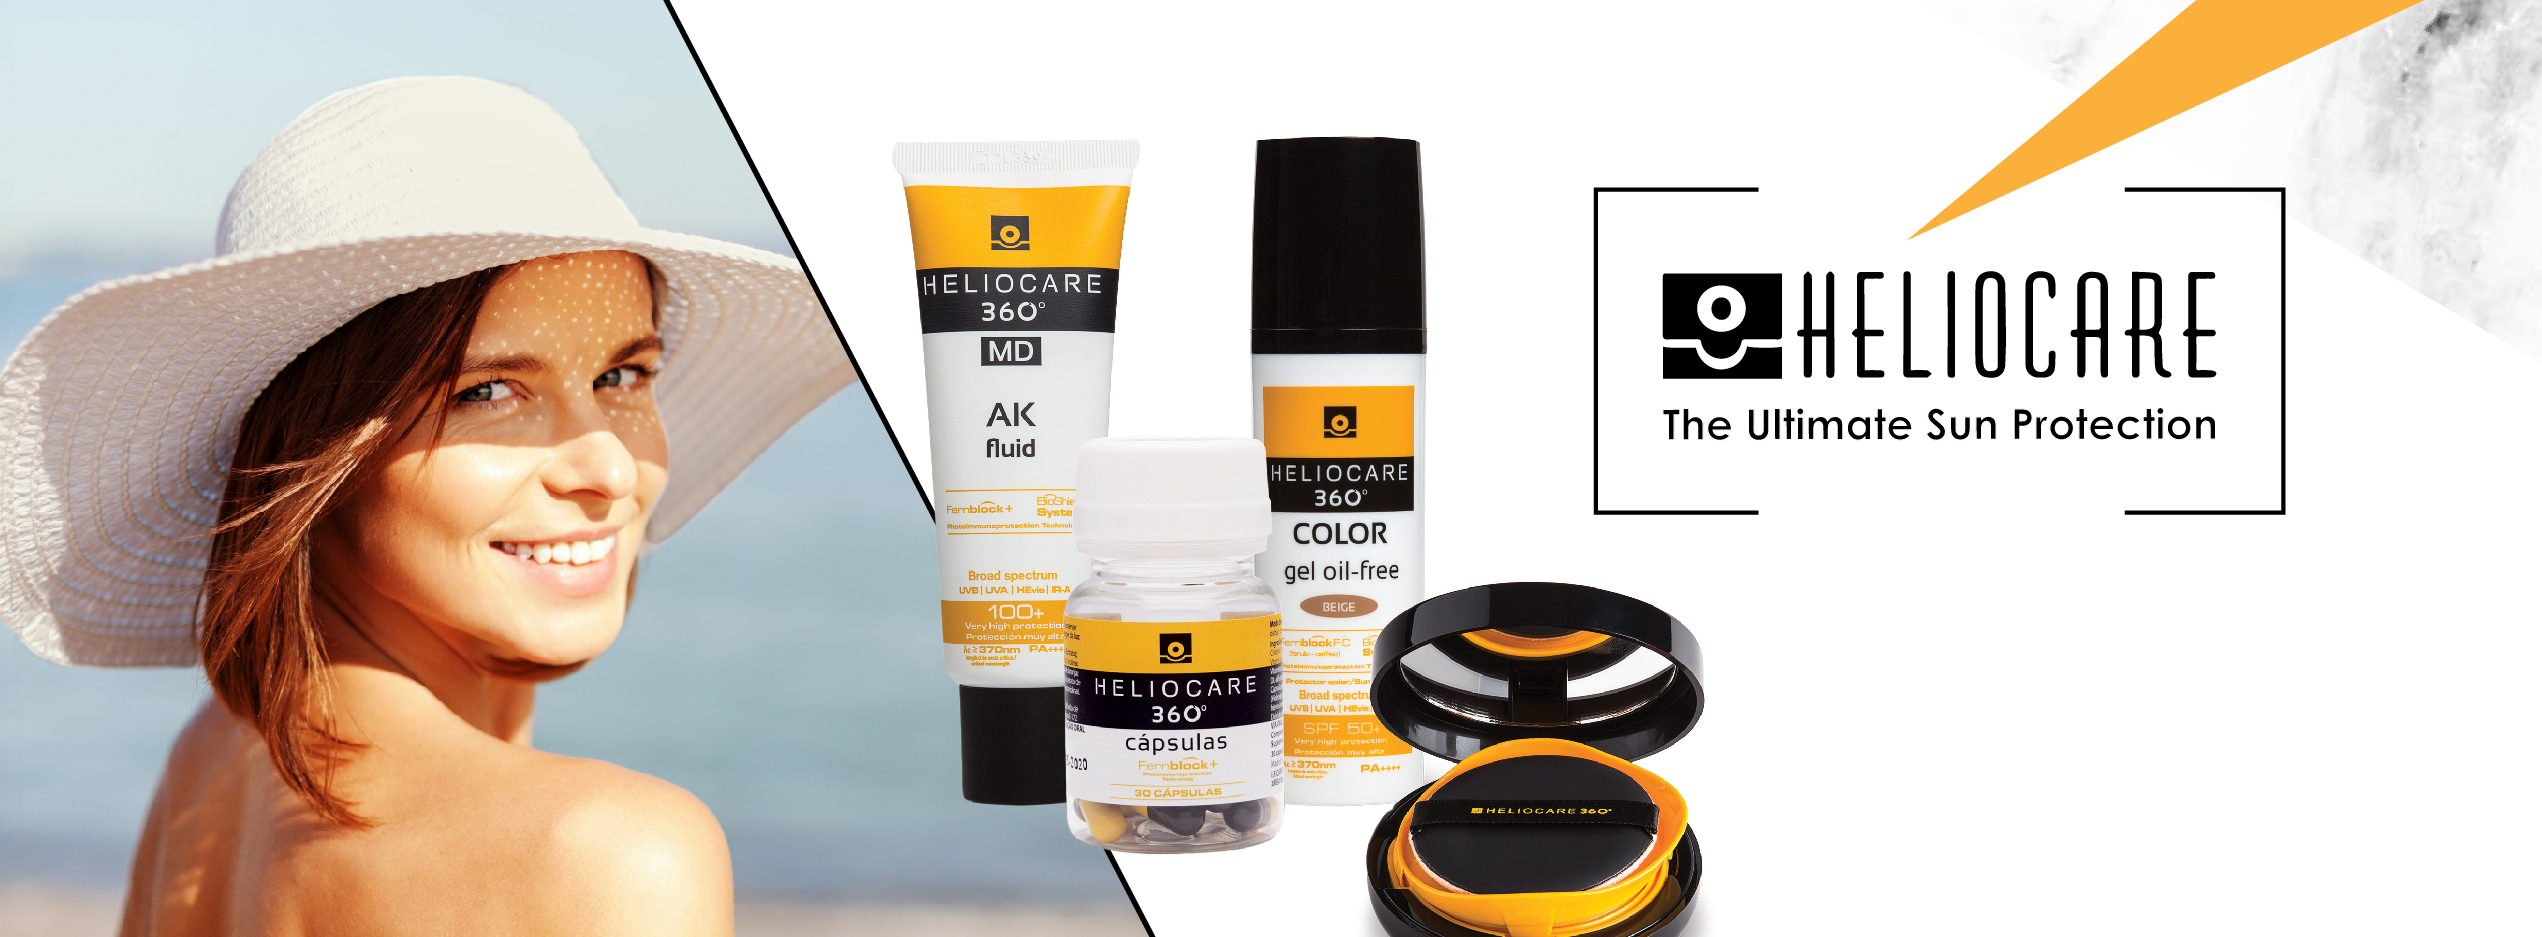 heliocare products at just skin online